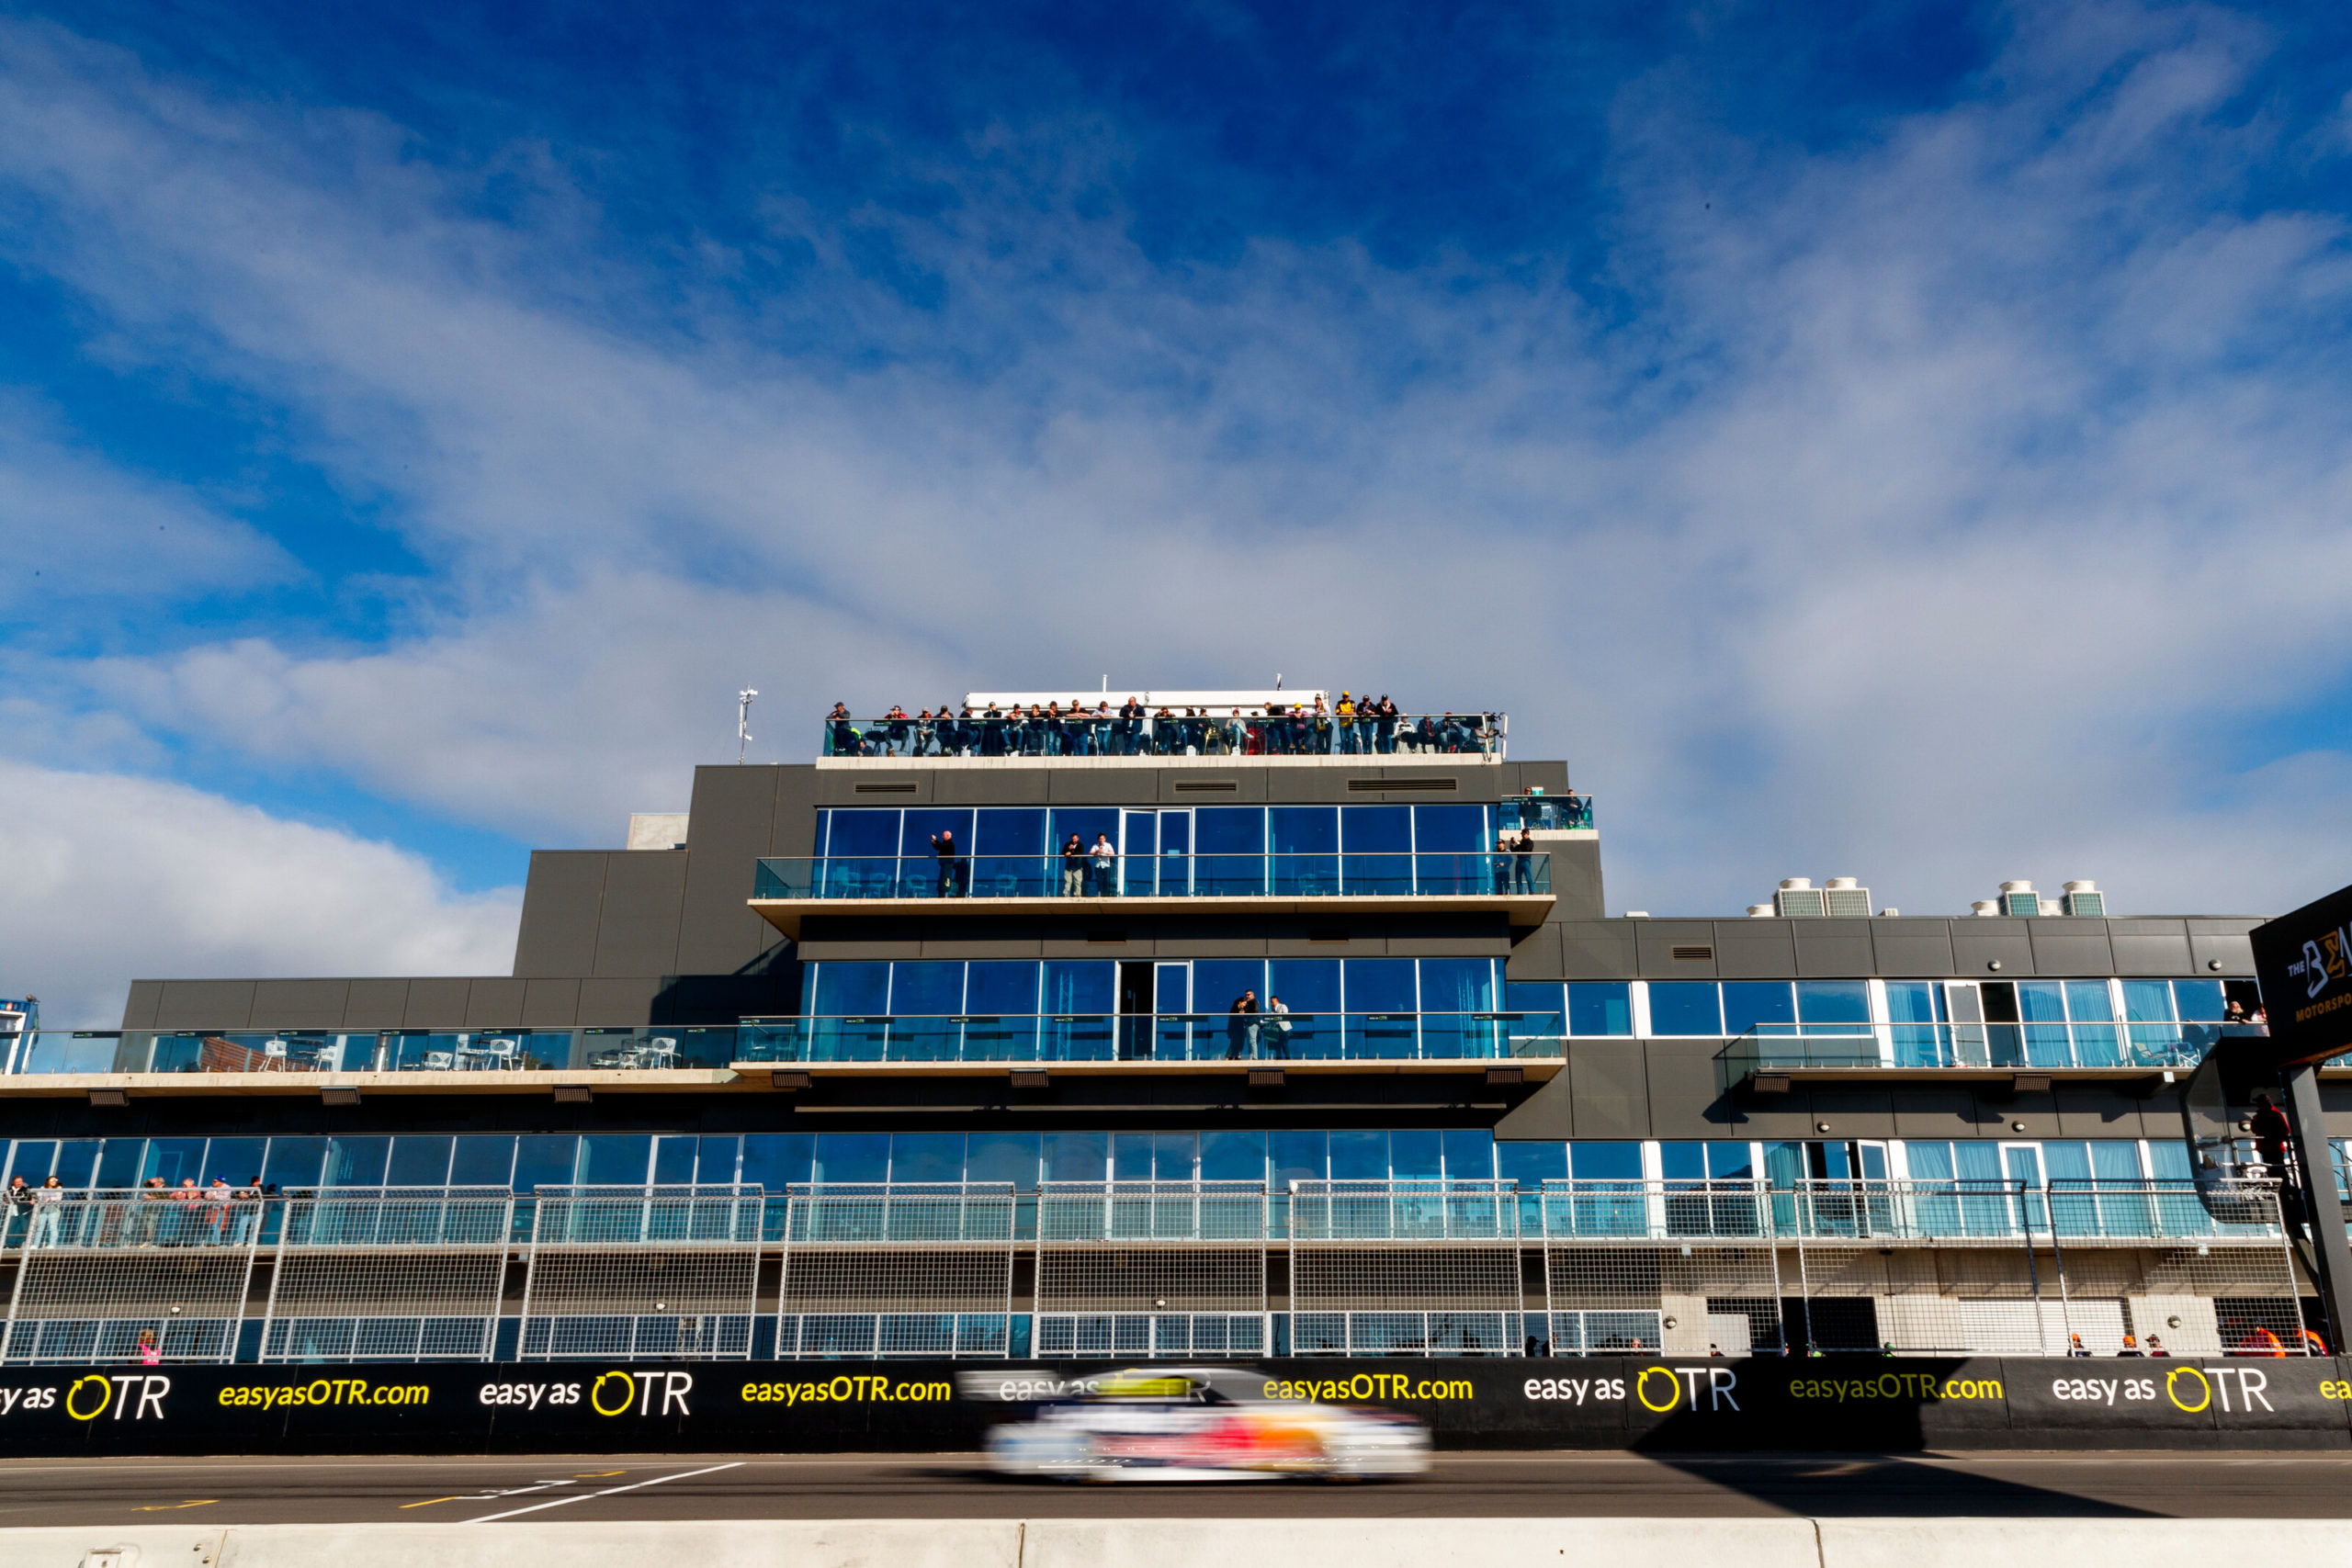 SA tourism boss looks to Supercars future at The Bend